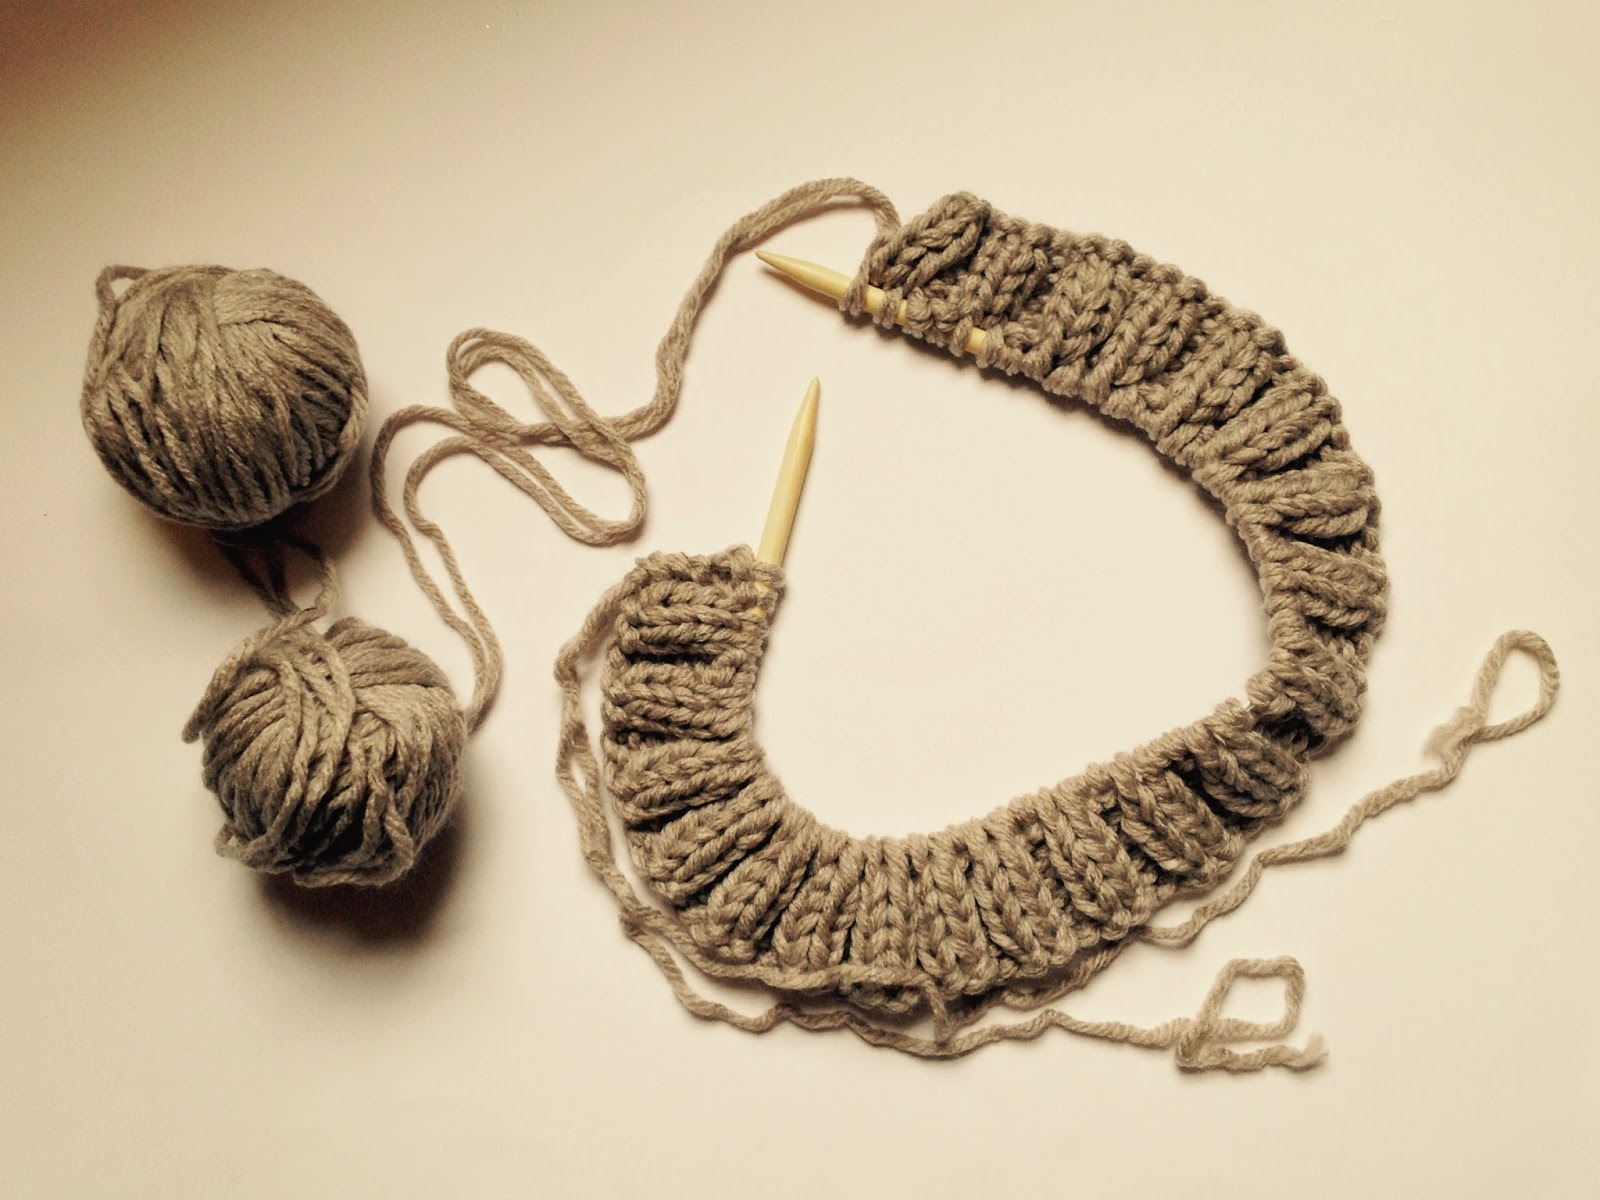 Knitting In The Round Circular Needles : The geeky knitter knitting with circular needles